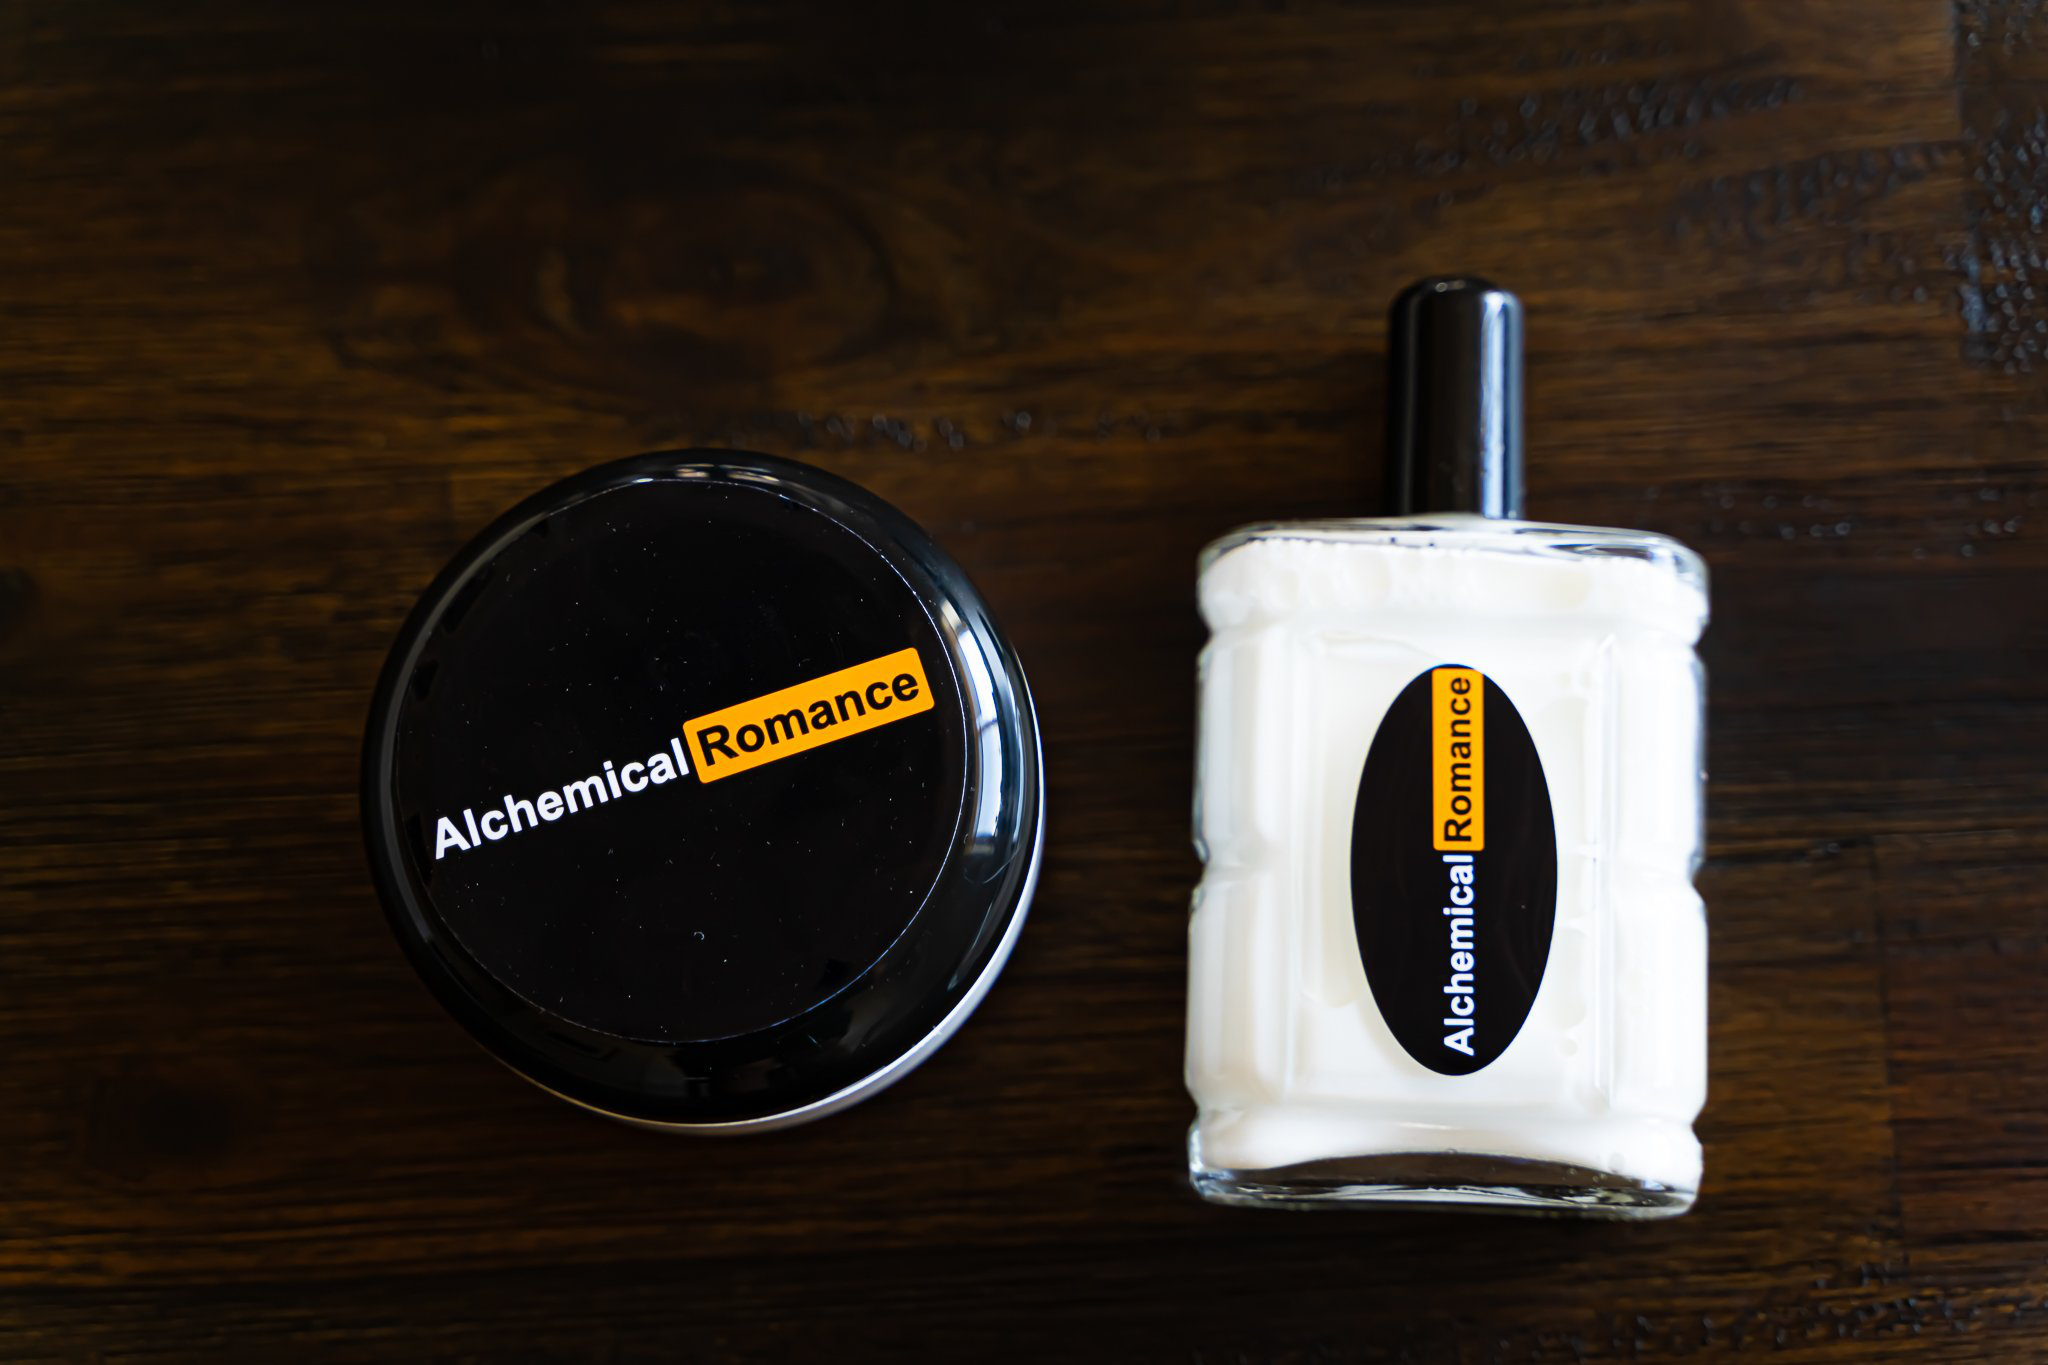 Apex Alchemy Soaps - Alchemical Romance - Aftershave image